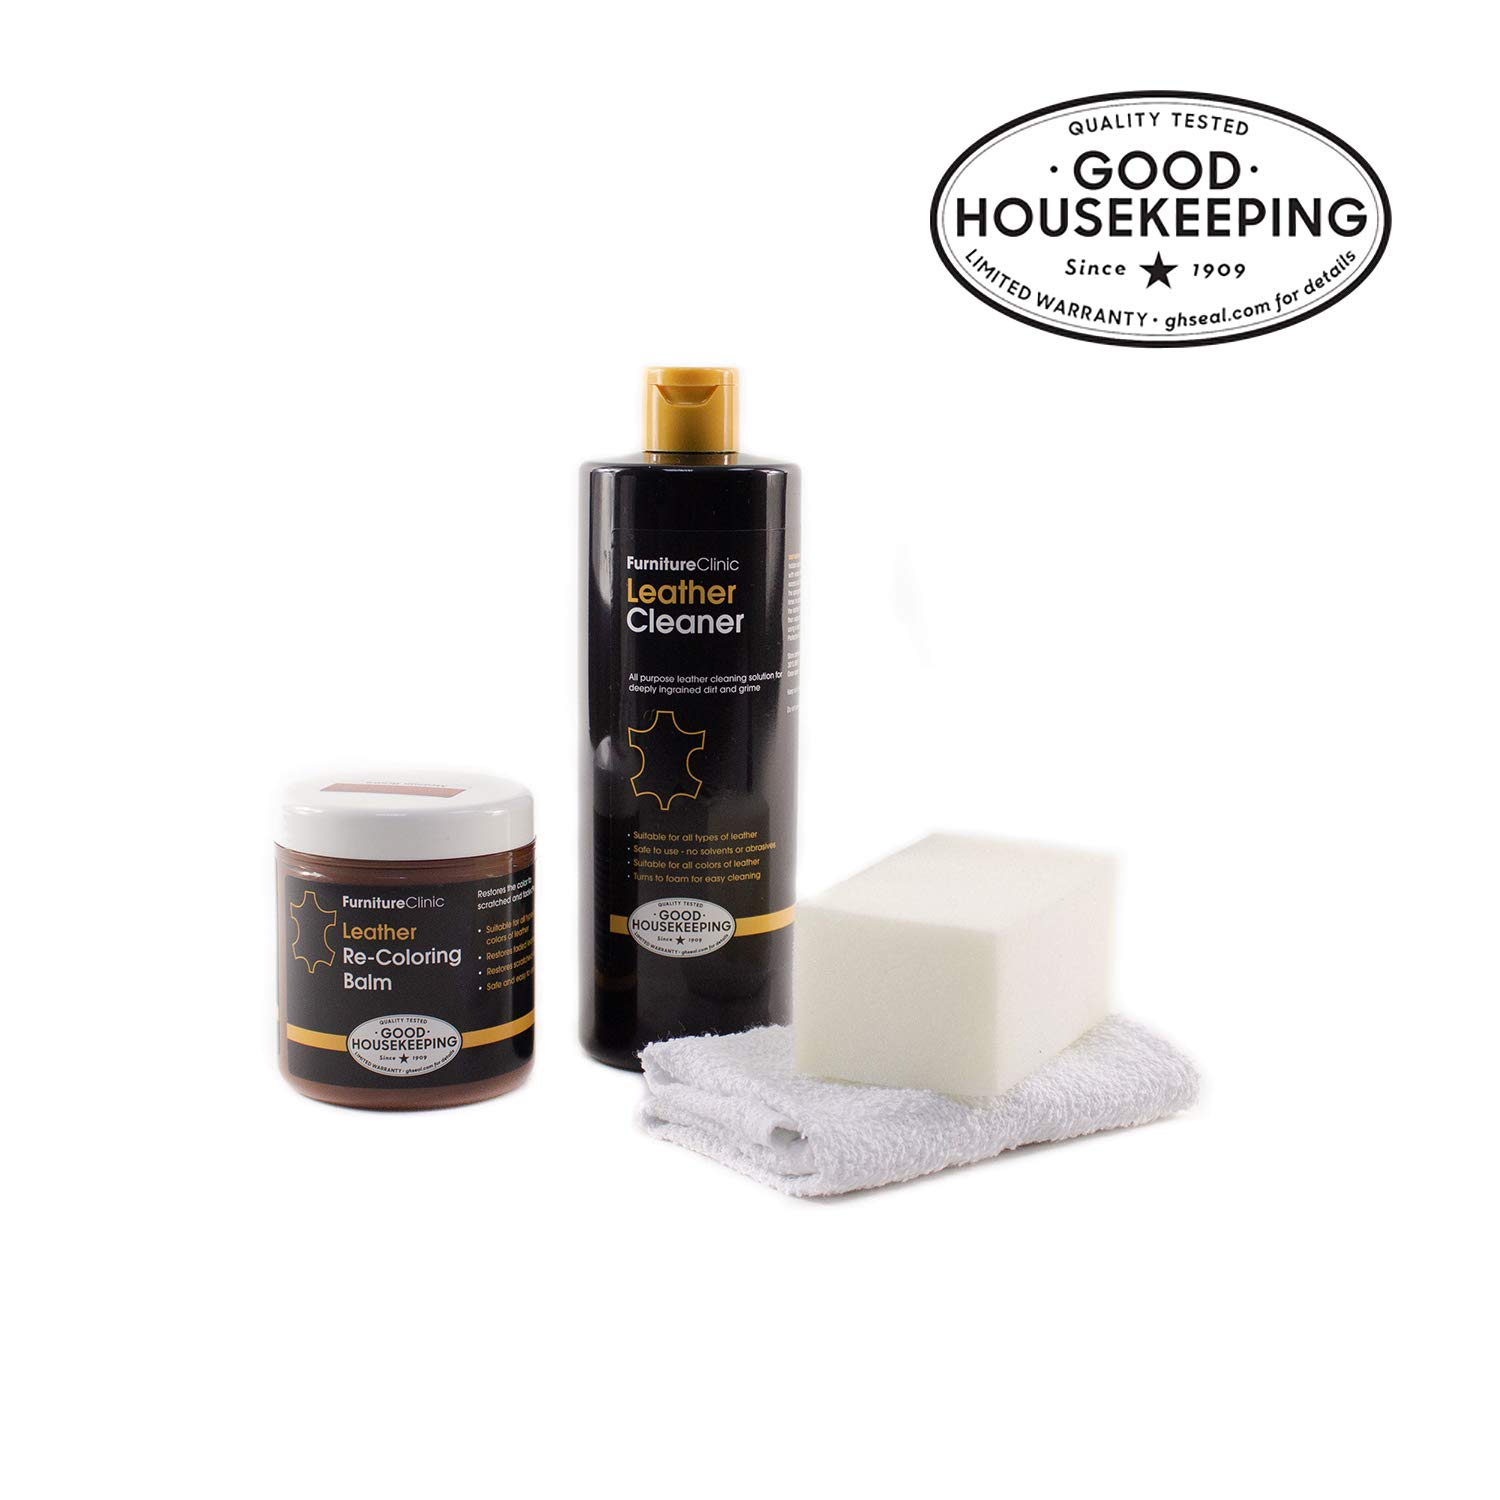 Furniture Clinic Leather Easy Restoration Kit   Set Includes Leather Recoloring Balm & Leather Cleaner, Sponge & Cloth   Restore & Repair Your Sofas, Car Seats & Other Leather Furniture (Navy Blue)